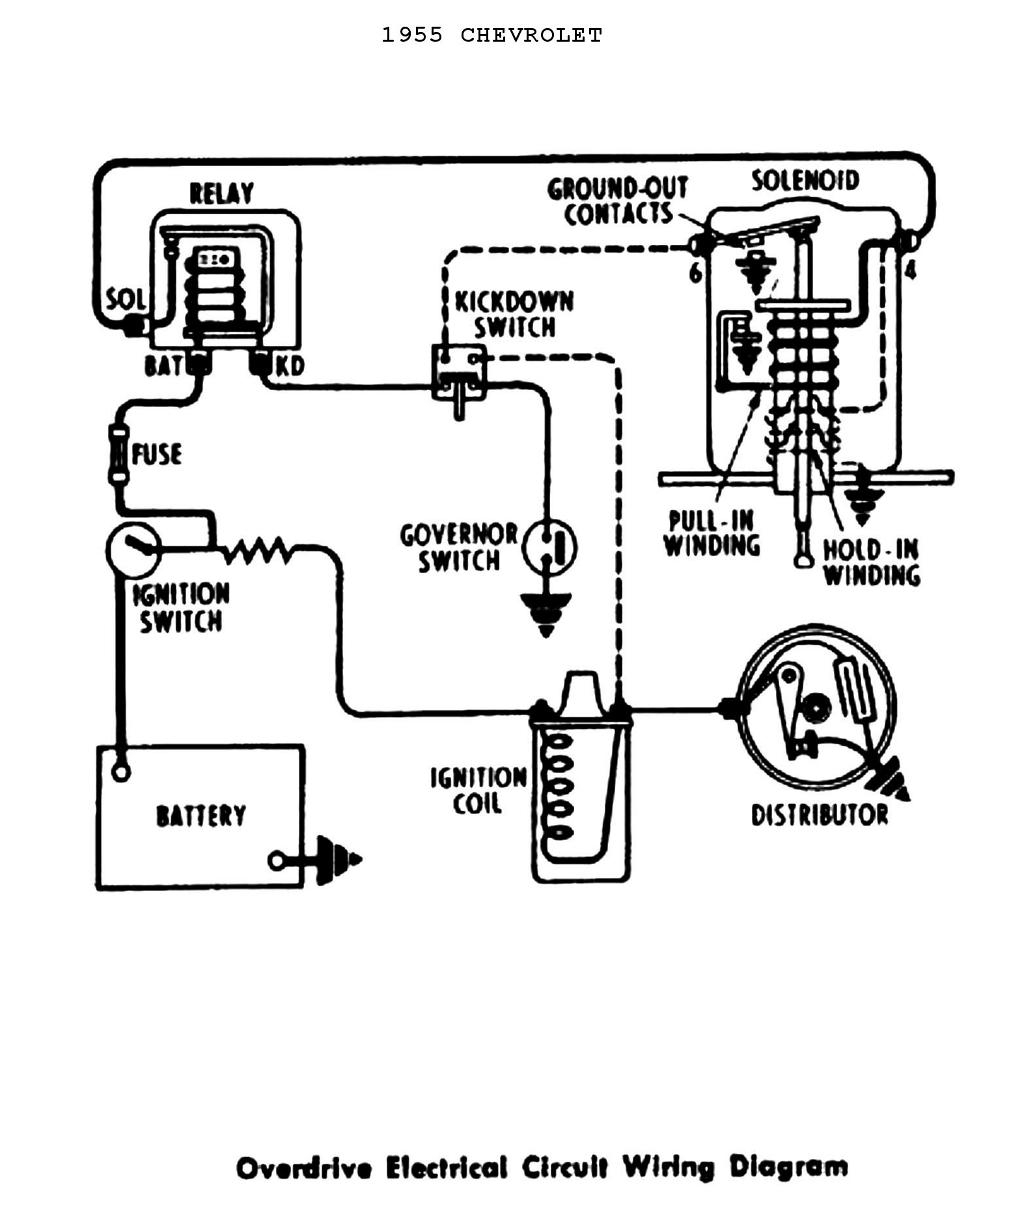 wiring diagram gm hei distributor only 4 pin gm hei distributor wiring diagram